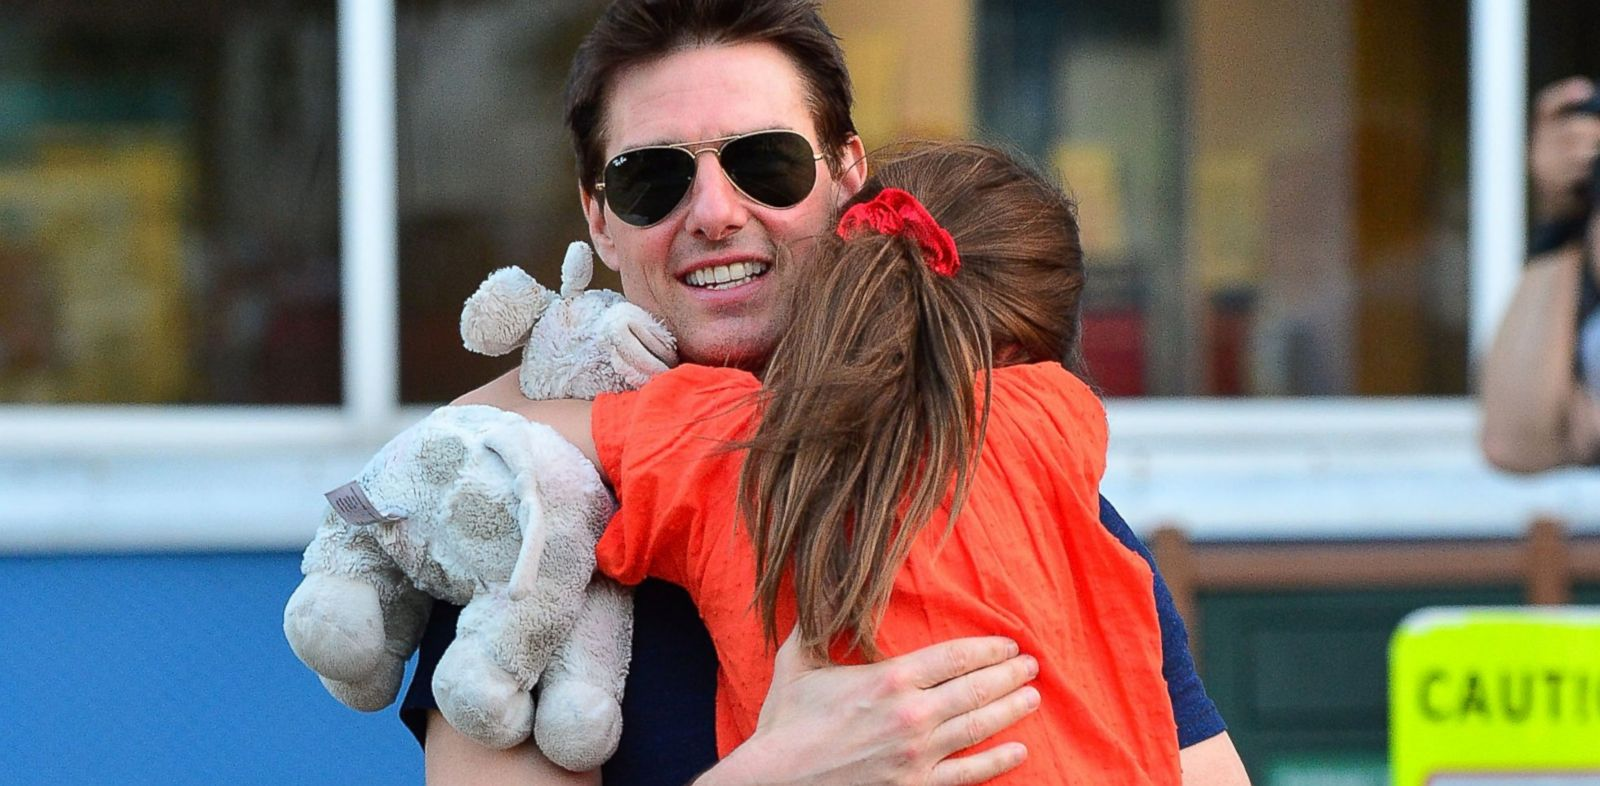 PHOTO: Tom Cruise and Suri Cruise leave Chelsea Piers on July 17, 2012 in New York City.